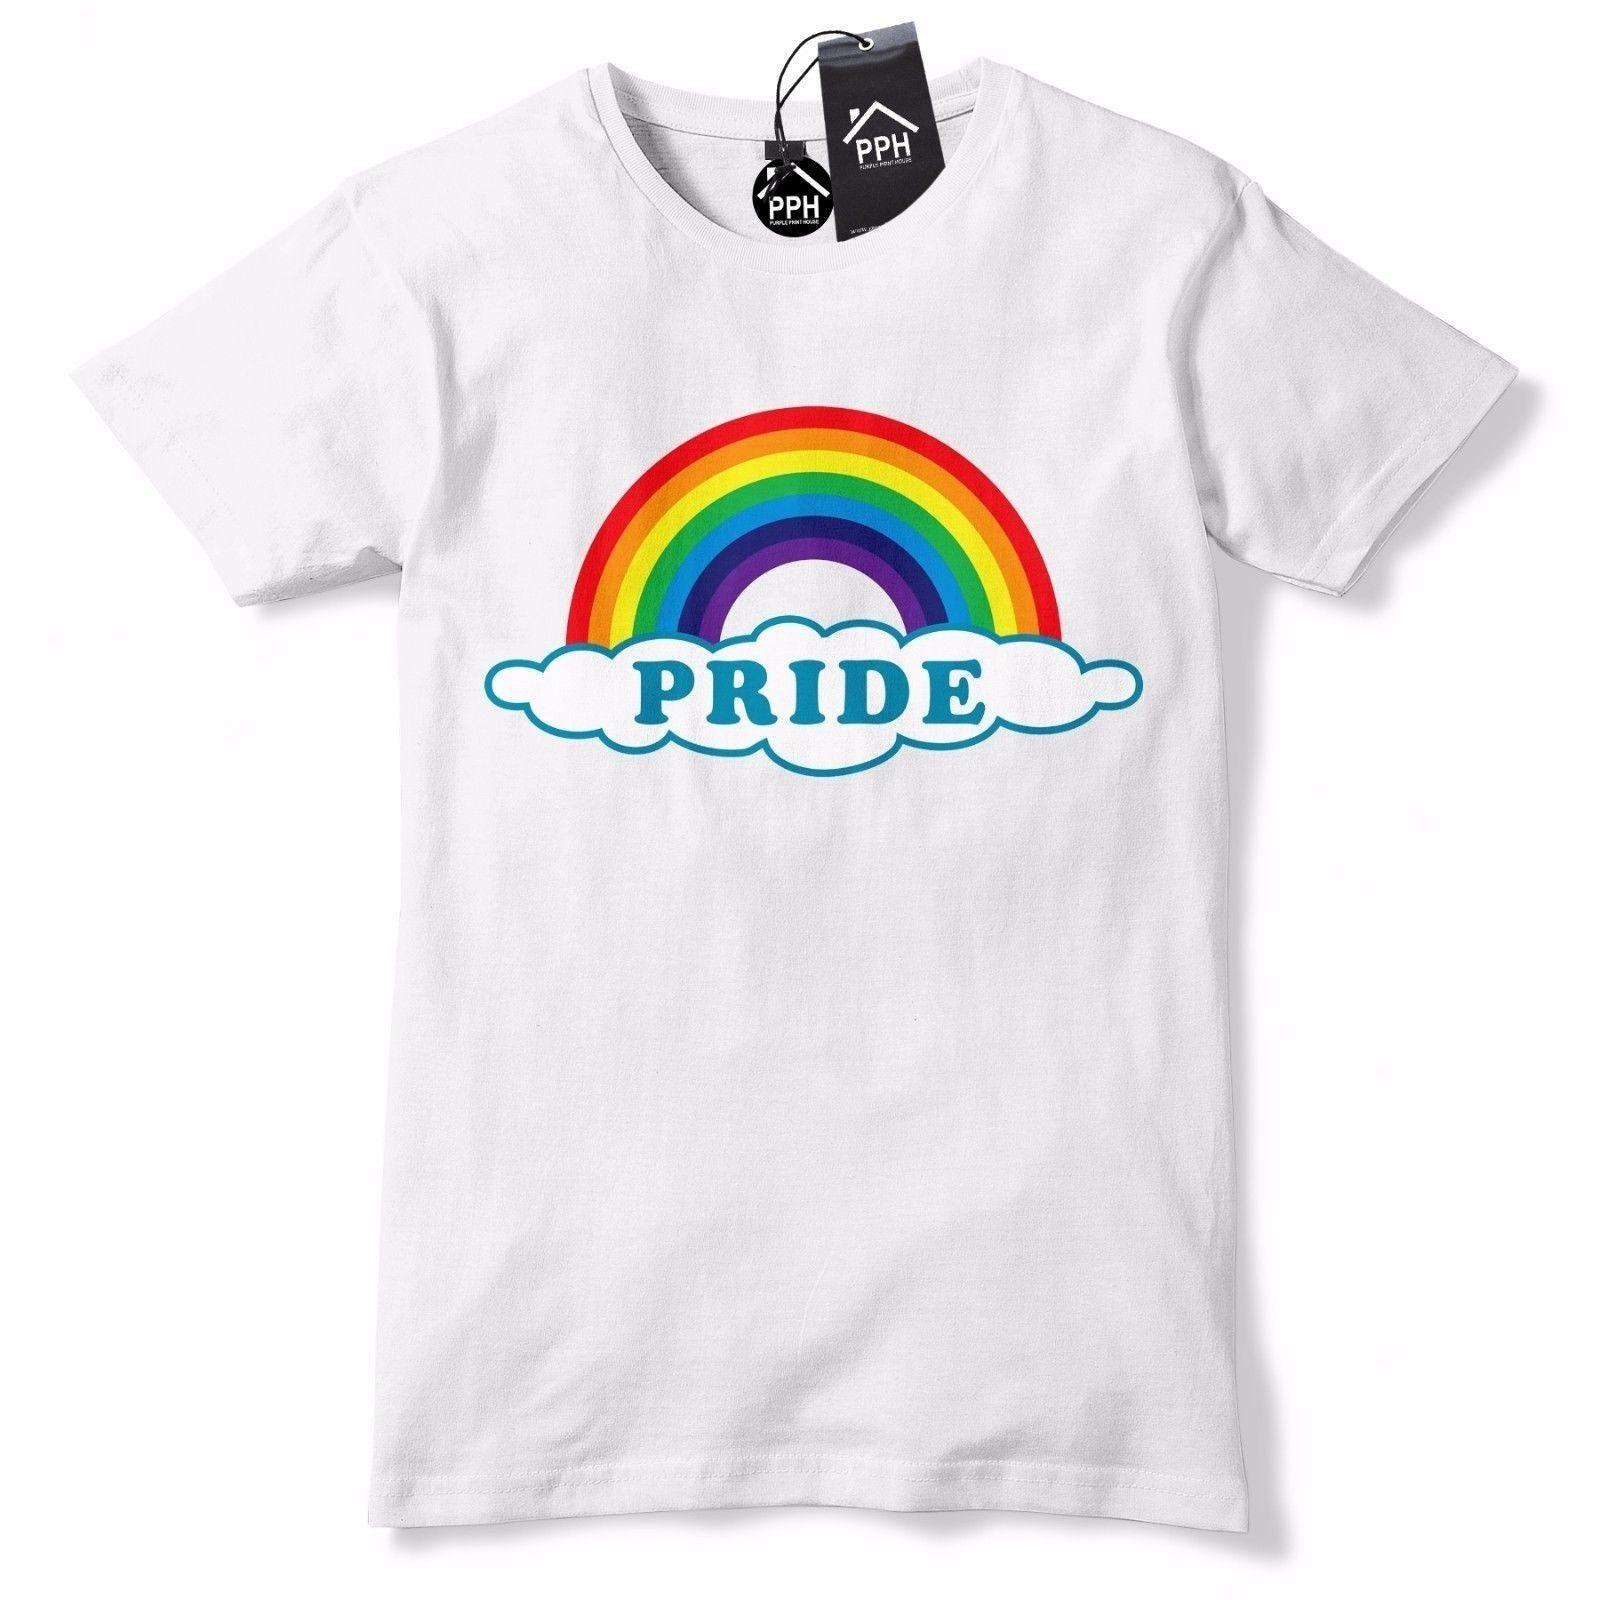 588d9d37c9 Gay Pride T Shirt Mens Rainbow Tshirt glitter Lesbian LGBT Festival Outfit  604 Funny free shipping Unisex Casual tee gift